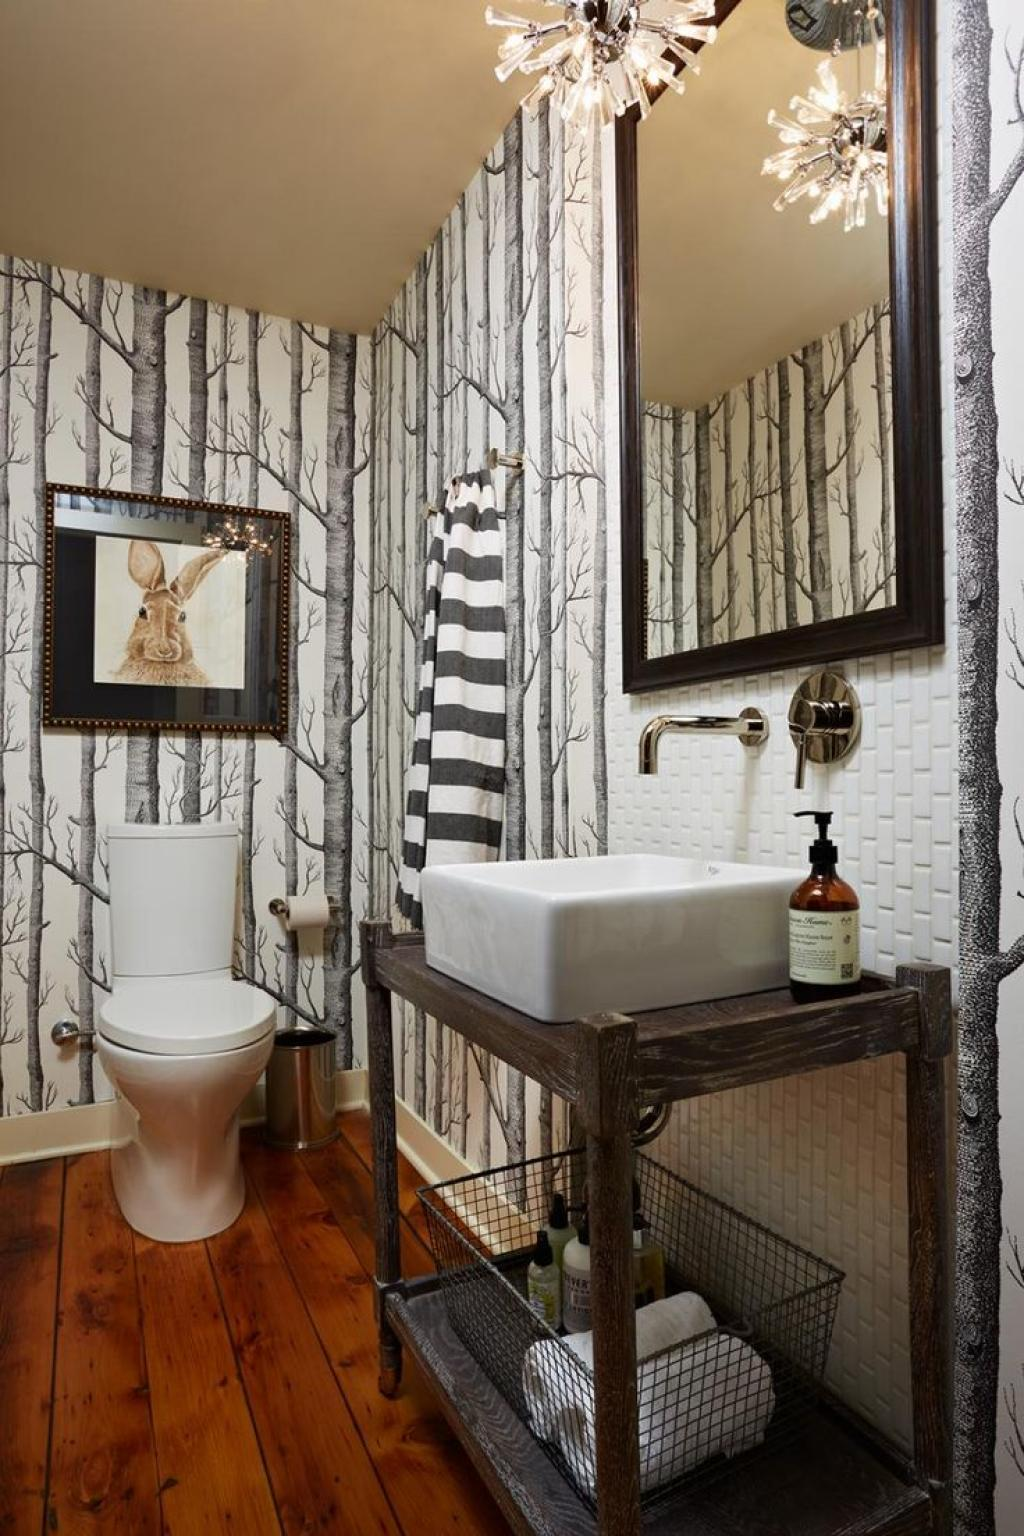 Dry wood forest bathroom wallpaper ideas for small modern for Forest bathroom ideas